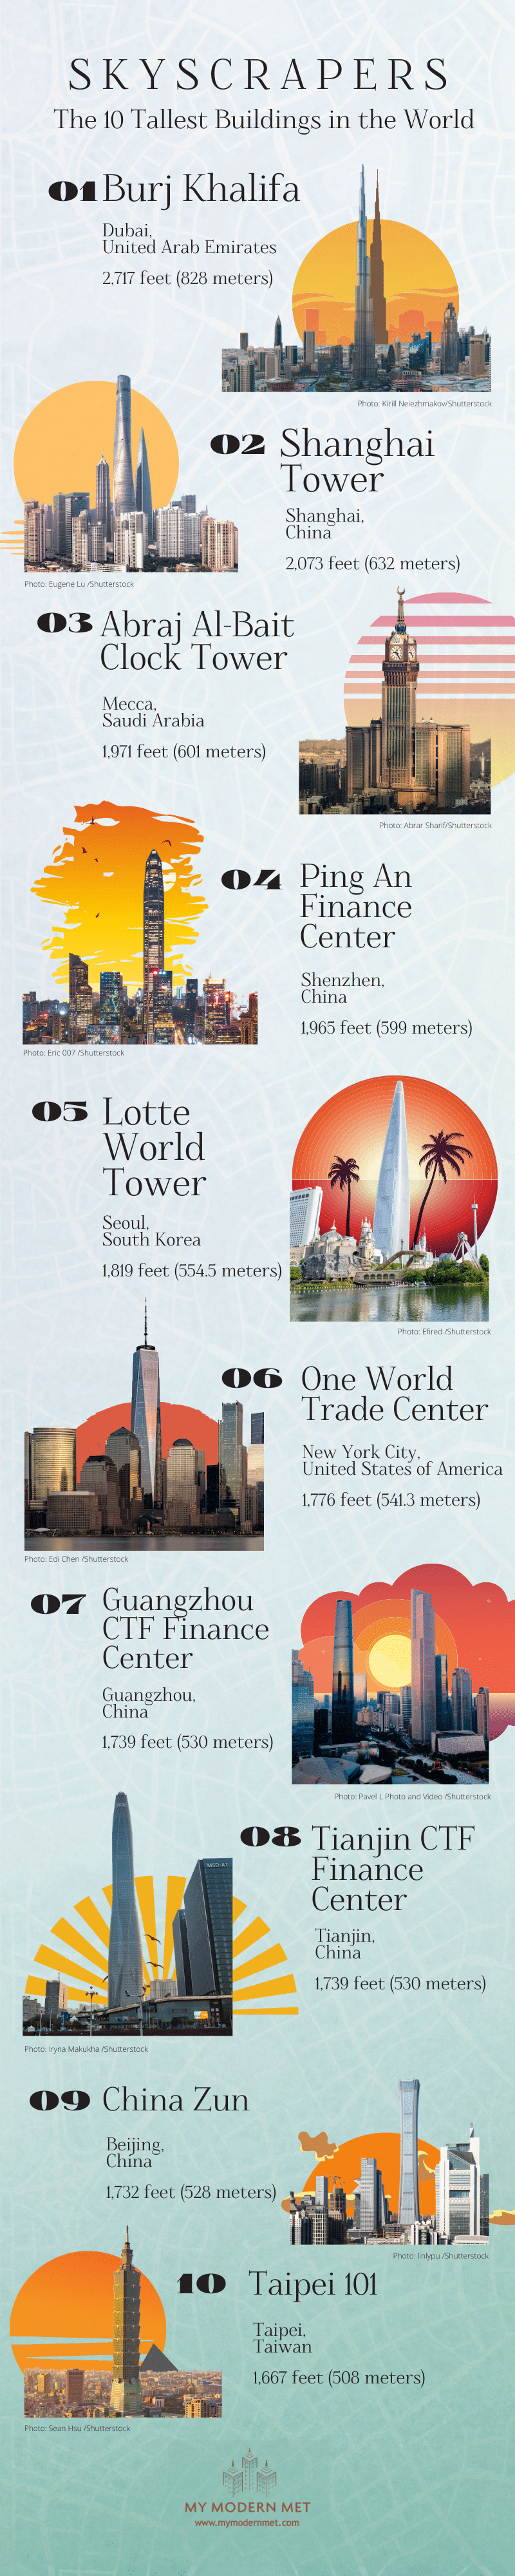 Infographic of the Tallest Buildings in the World